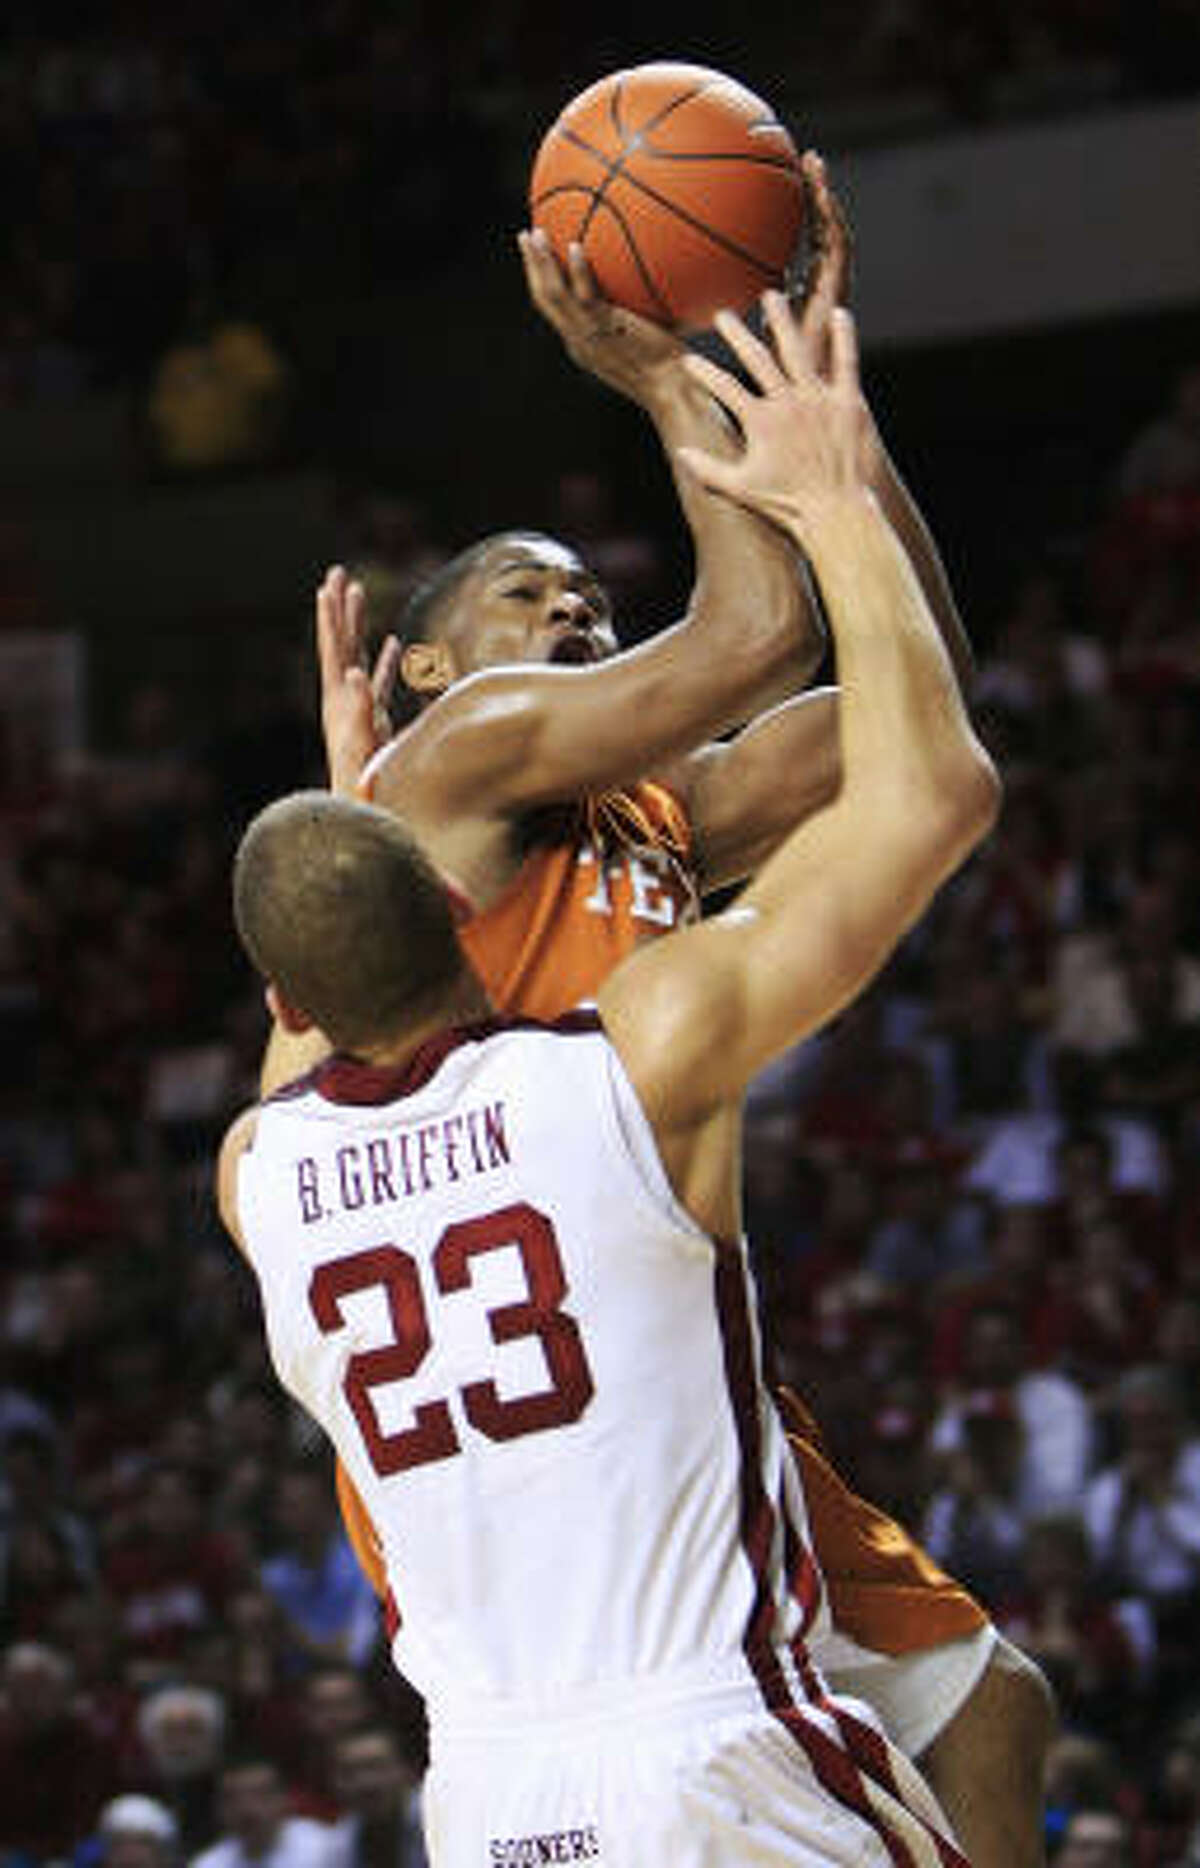 Texas guard Harrison Smith, rear, is called for an offensive foul as he runs into Oklahoma forward Blake Griffin on his way to the basket in the first half.